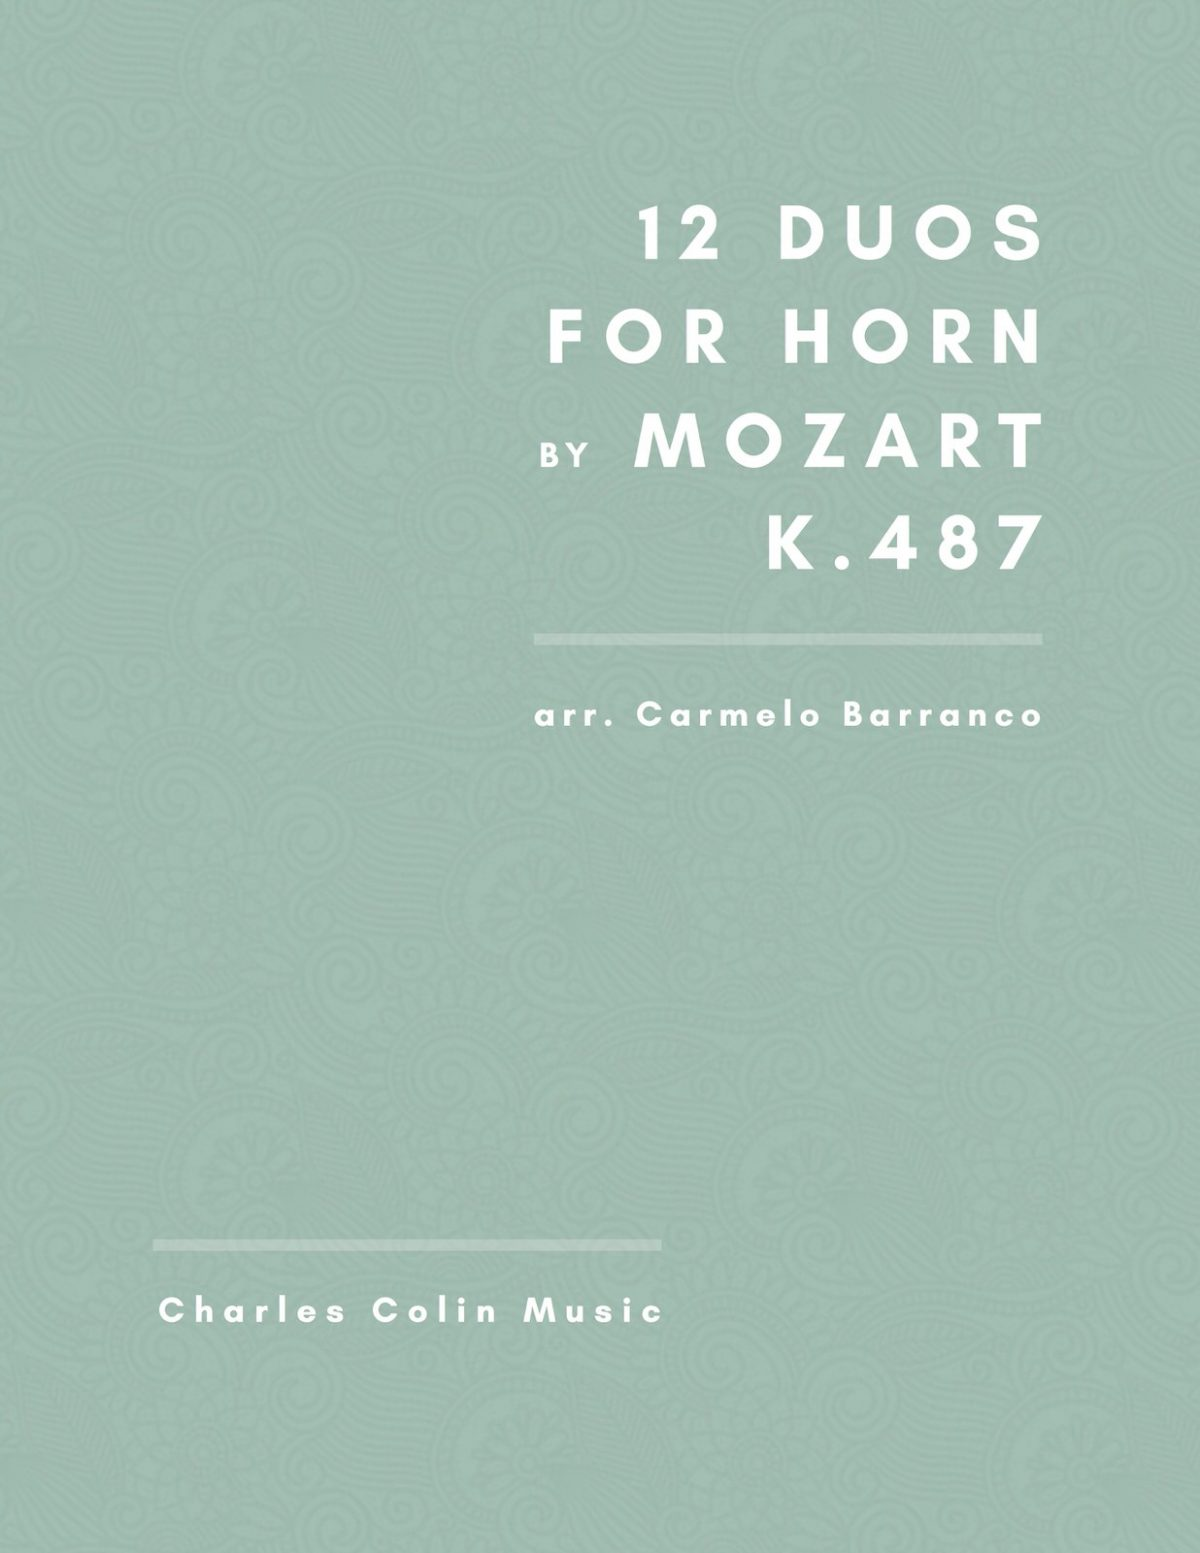 Barranco-Mozart, 12 Duets for French Horn K.487-p01